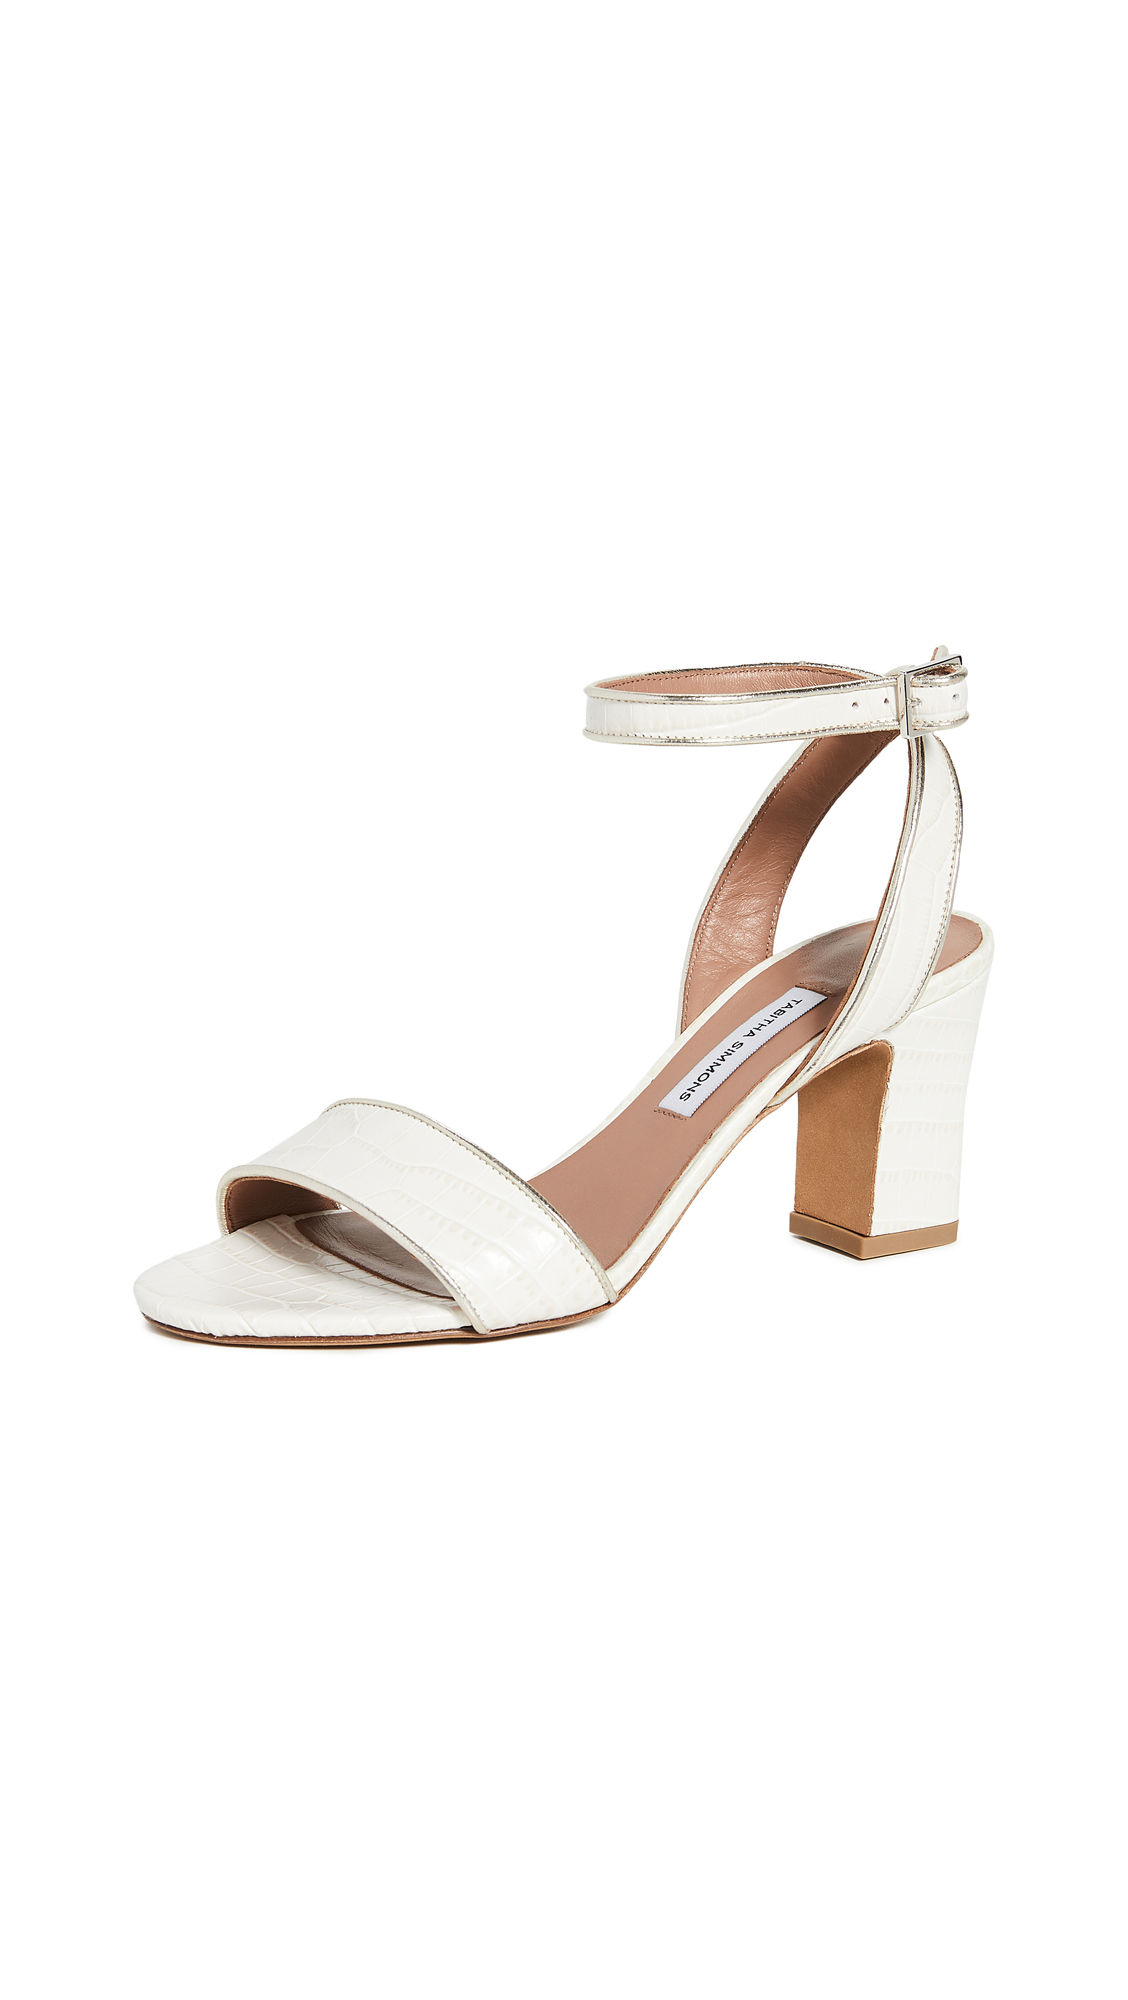 Tabitha Simmons Leticia Sandals – 40% Off Sale